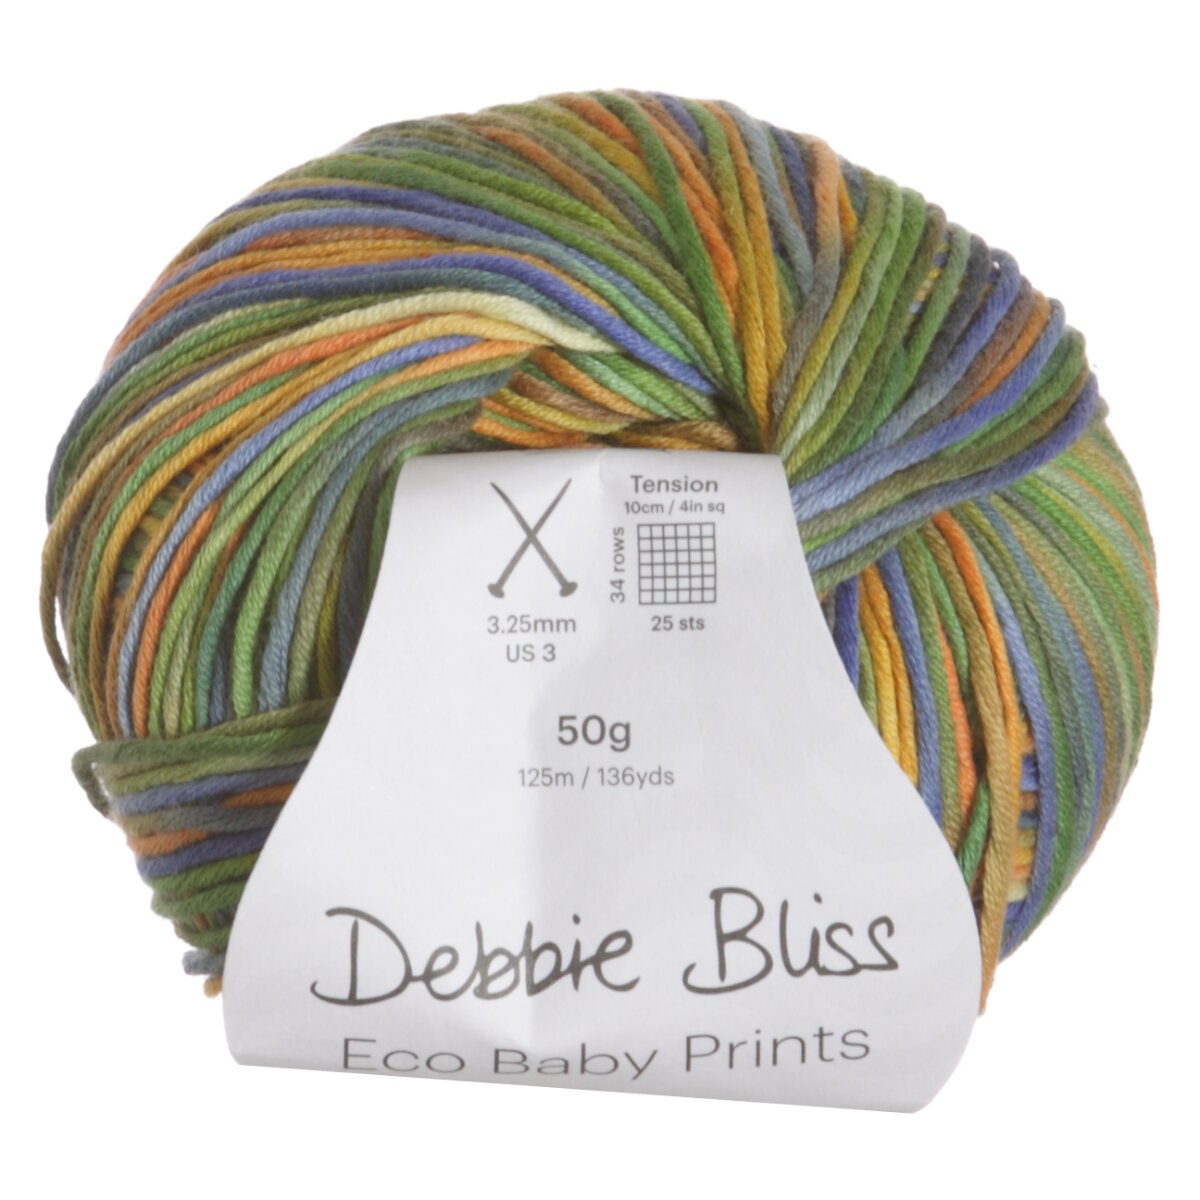 Debbie Bliss Eco Baby Prints Yarn 02 Park Project Ideas